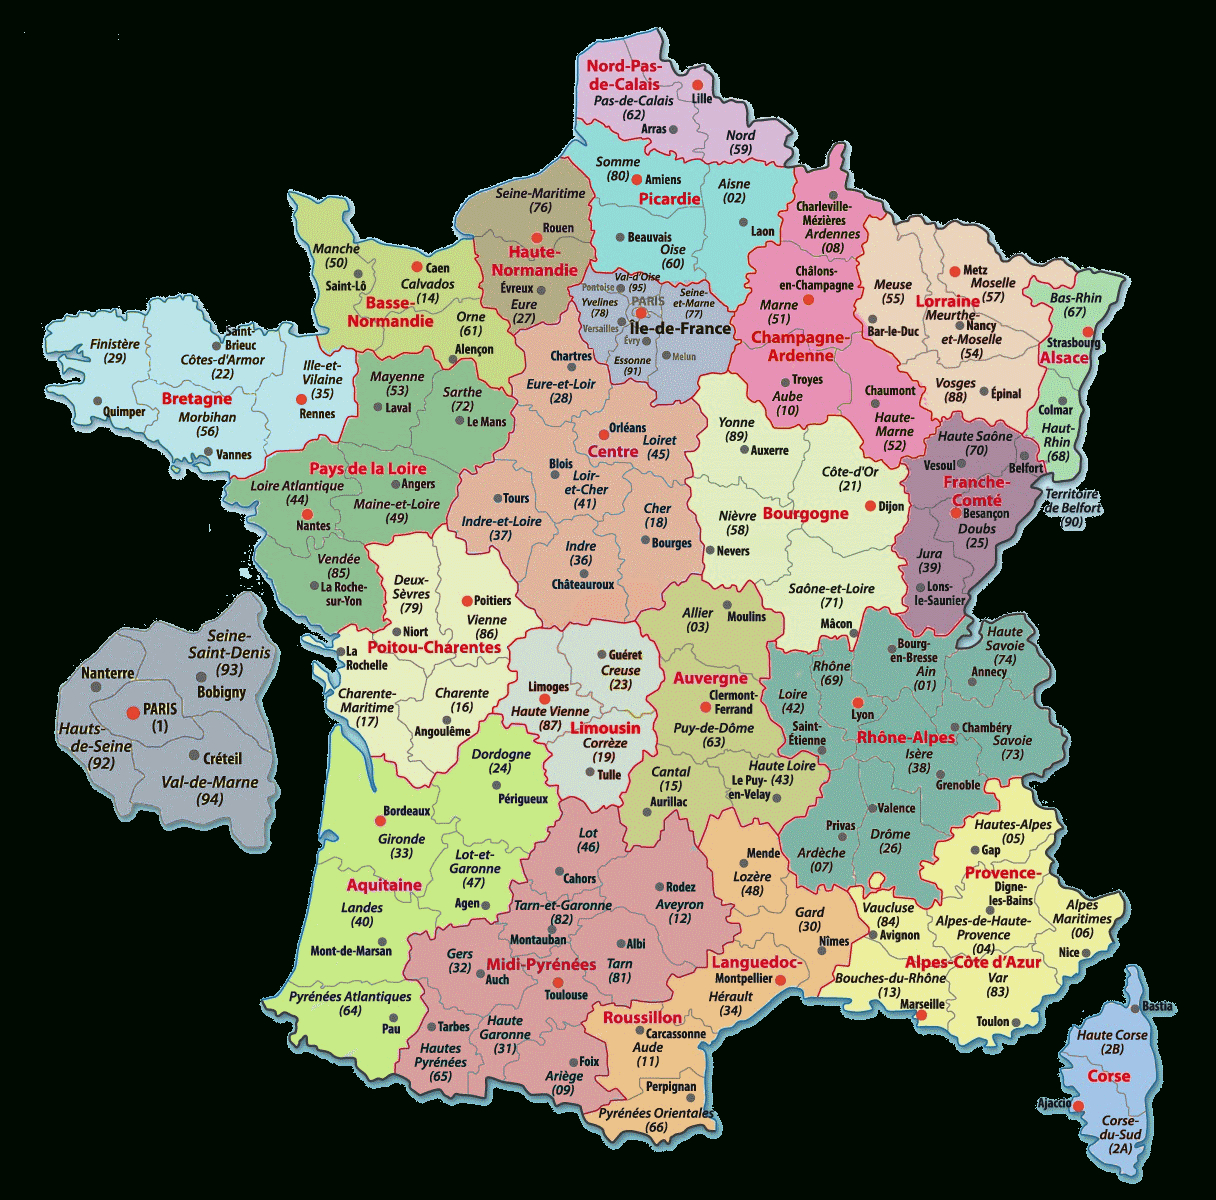 Carte De France Departements : Carte Des Départements De France tout Carte De France Avec Département À Imprimer